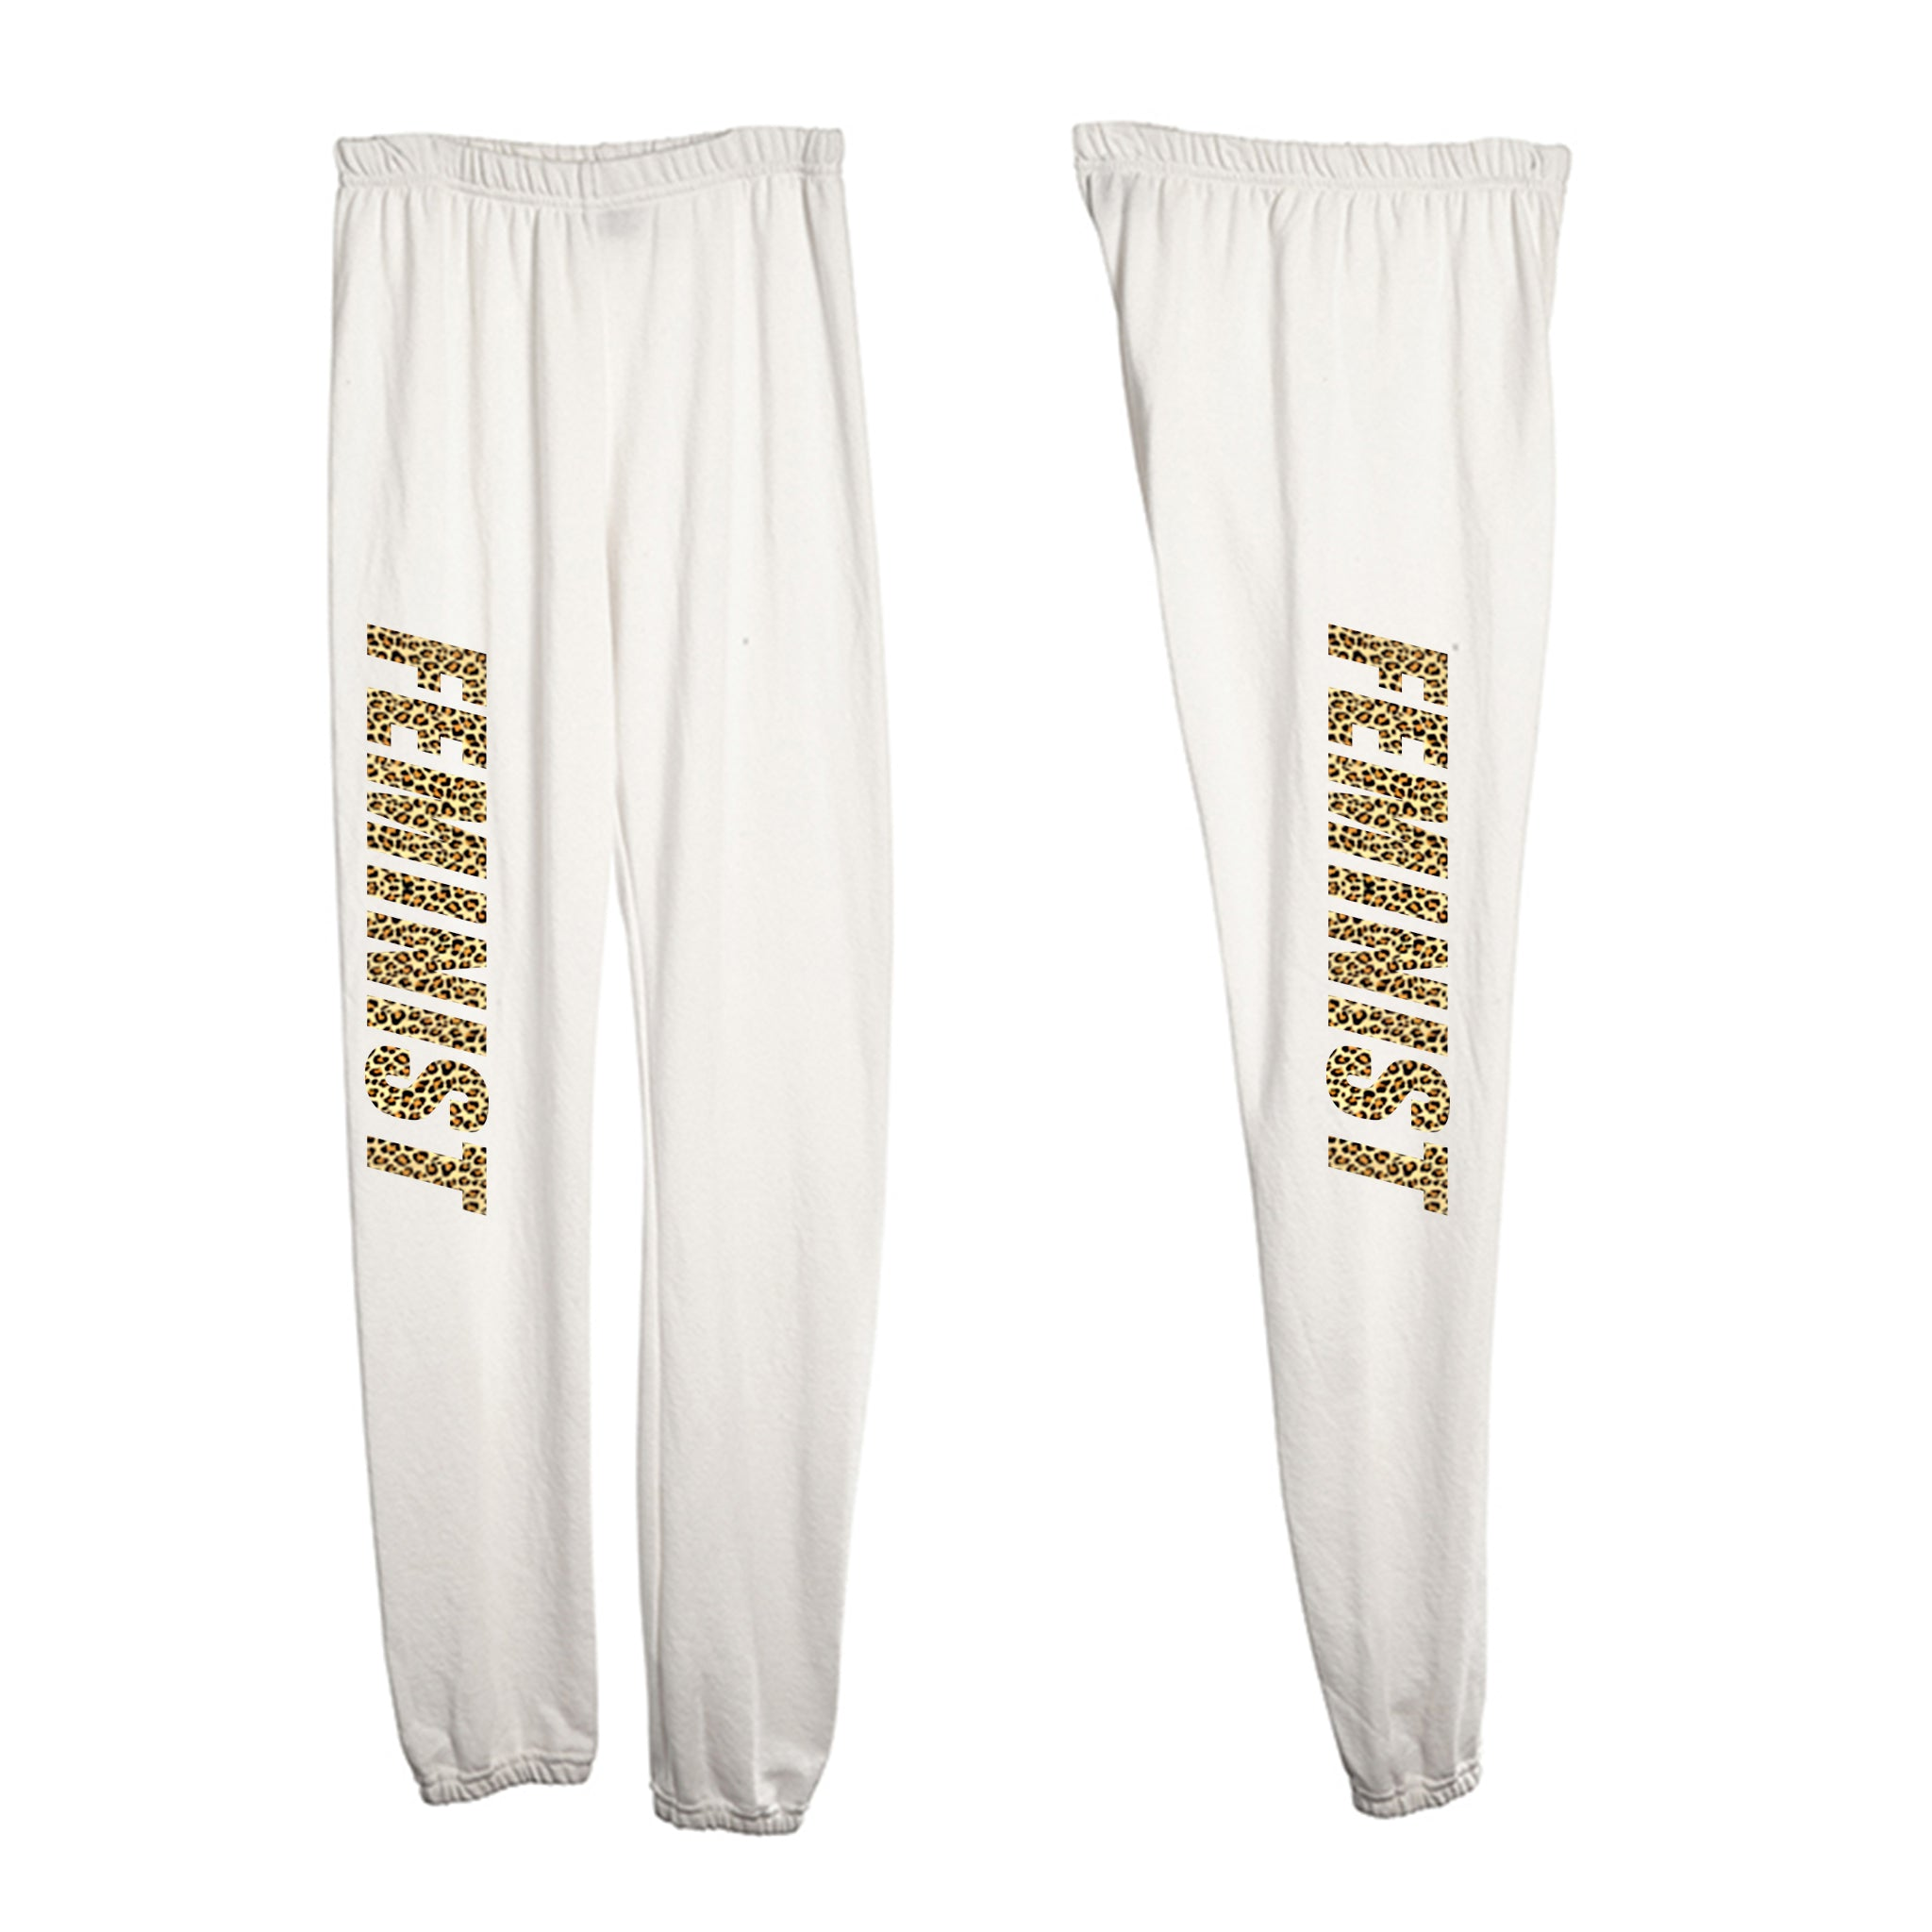 FEMINIST W/ CHEETAH TEXT [WOMEN'S SWEATPANTS]